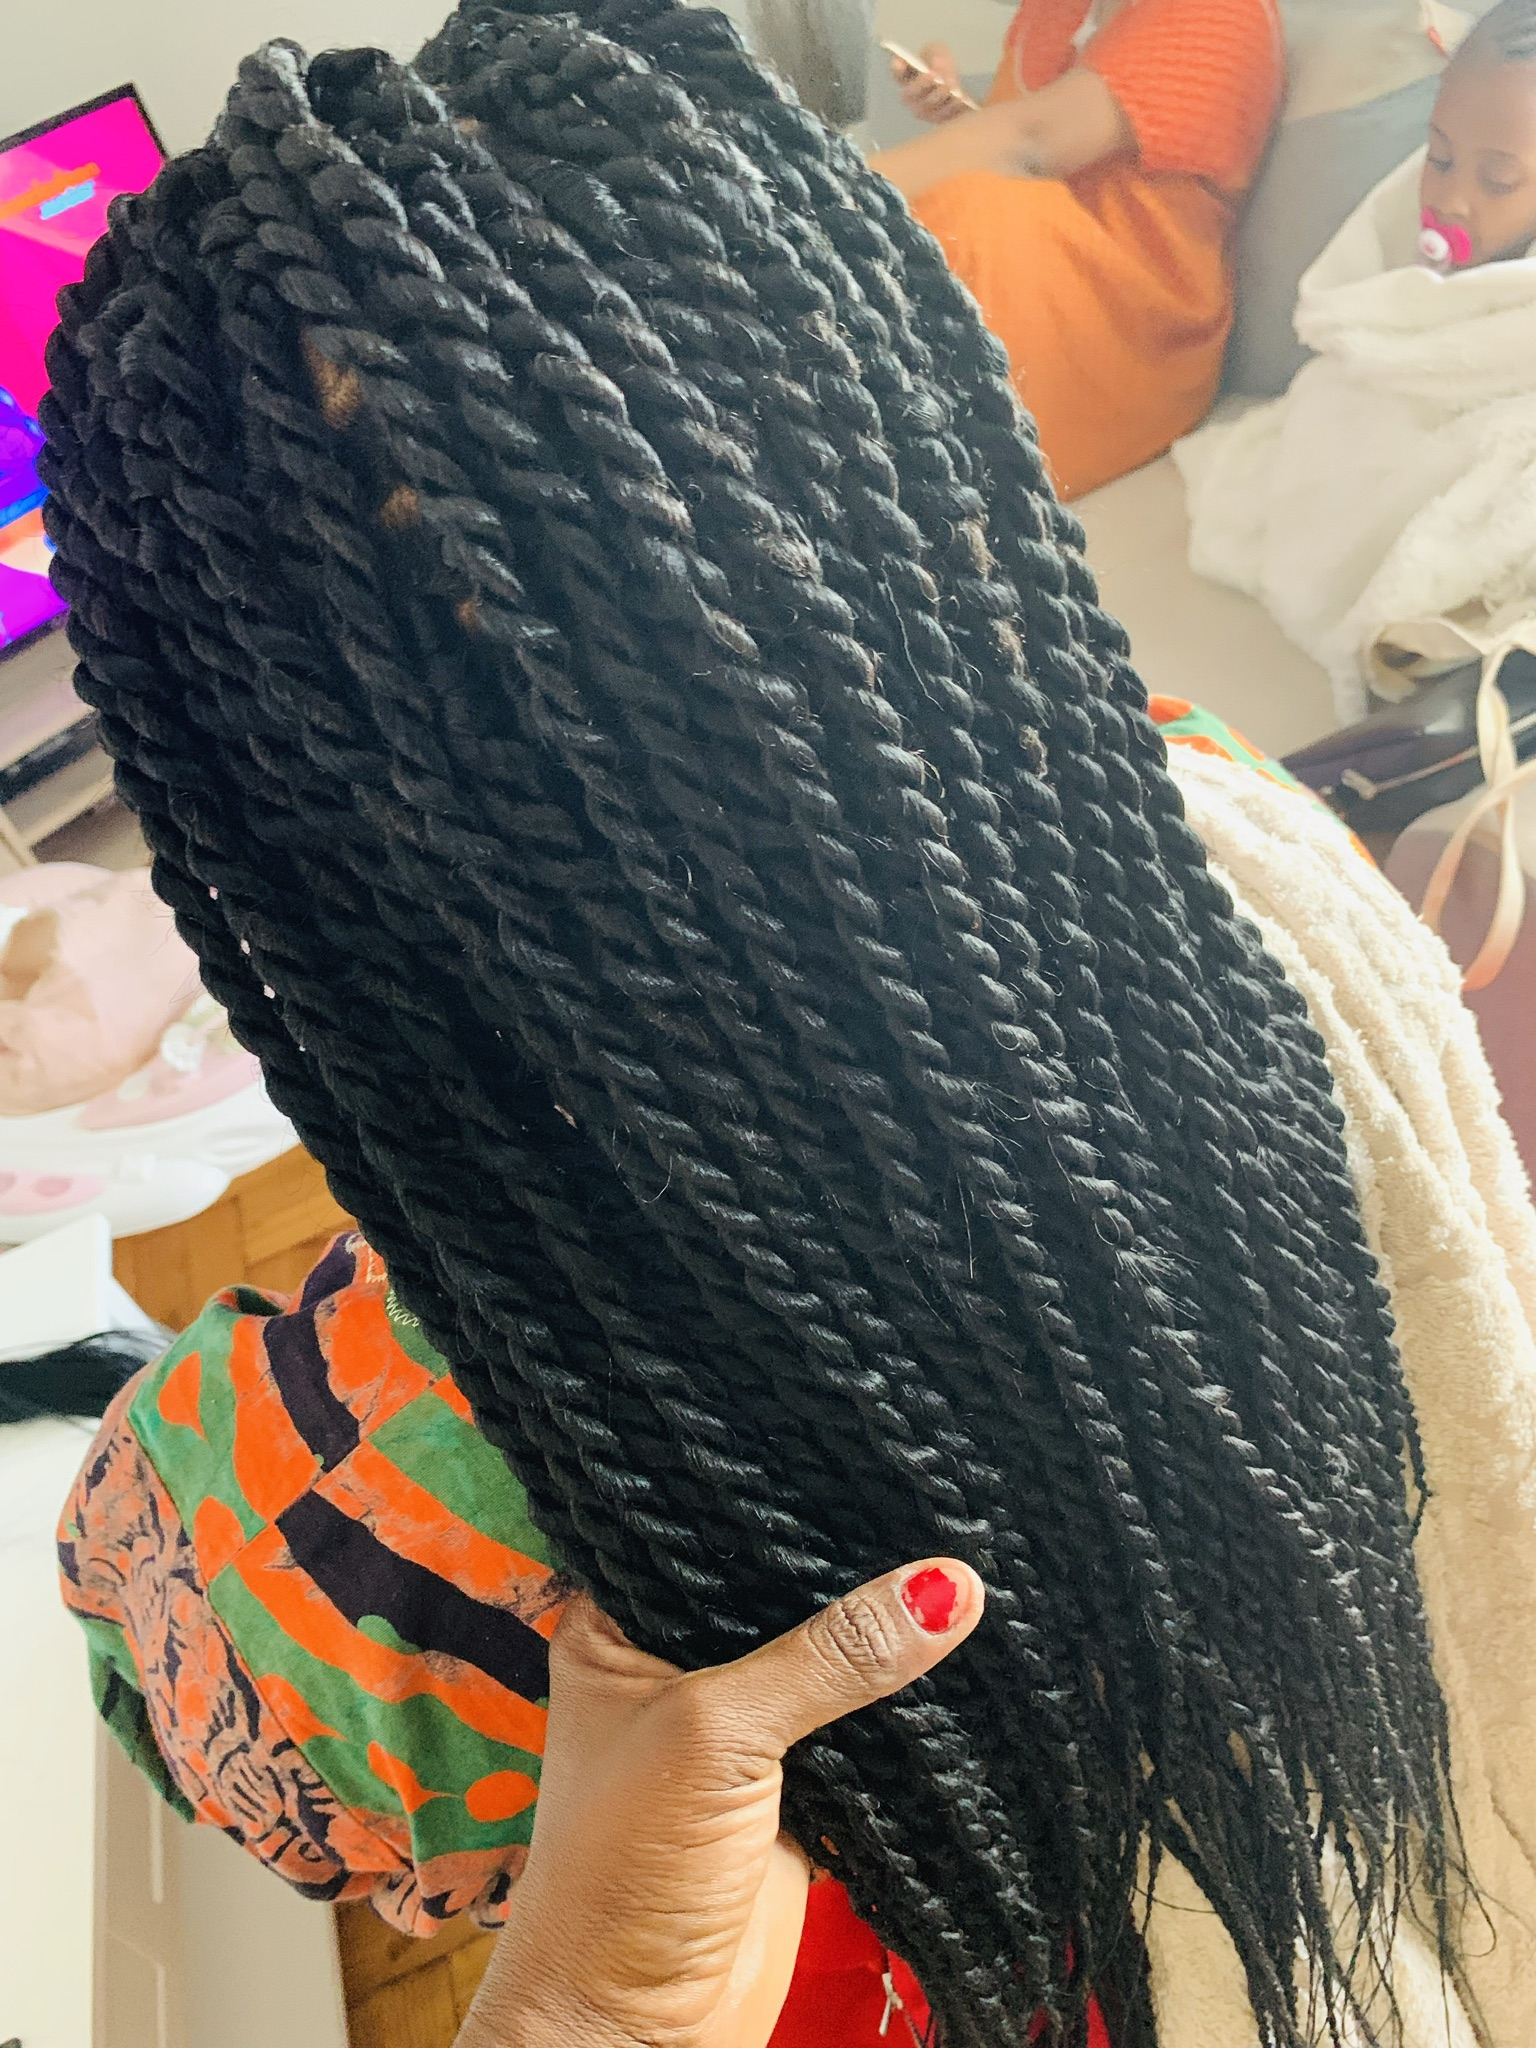 salon de coiffure afro tresse tresses box braids crochet braids vanilles tissages paris 75 77 78 91 92 93 94 95 WNNUAHHF